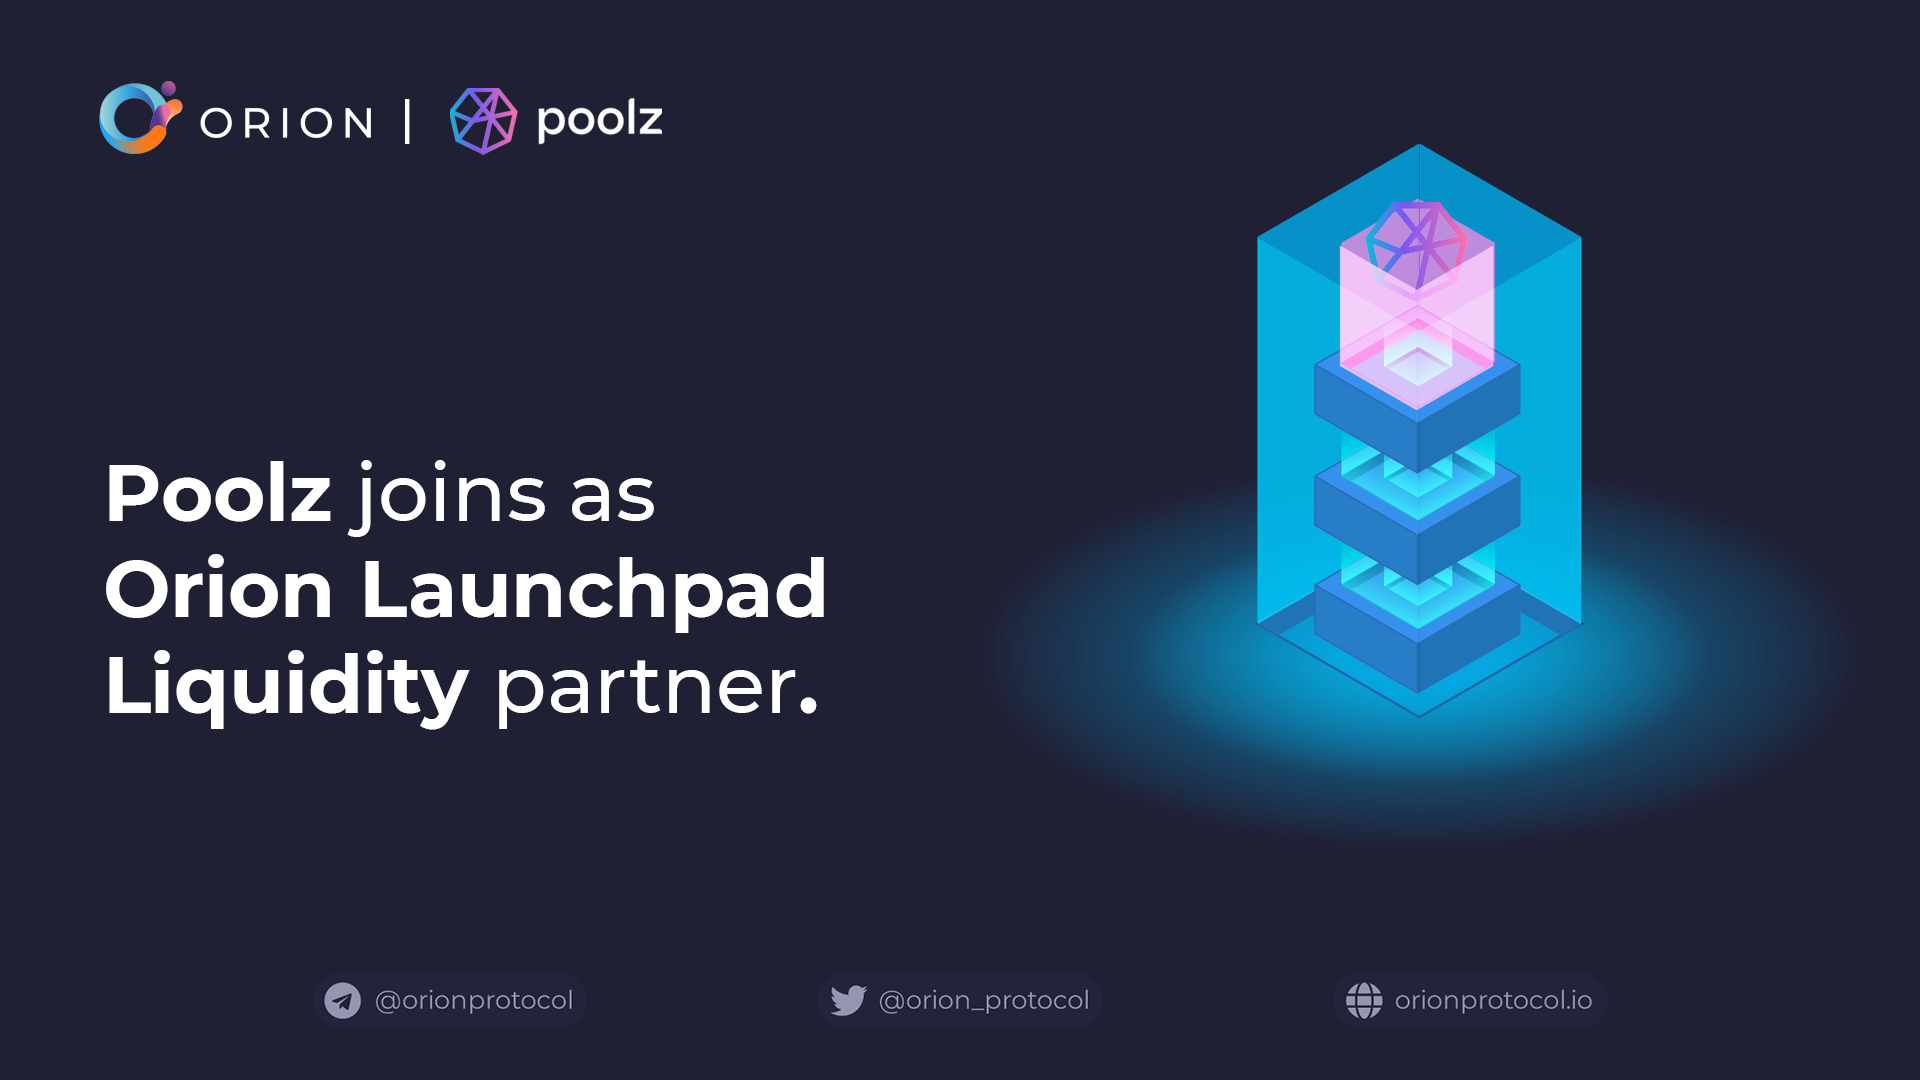 Poolz joins as Launchpad Liquidity partner